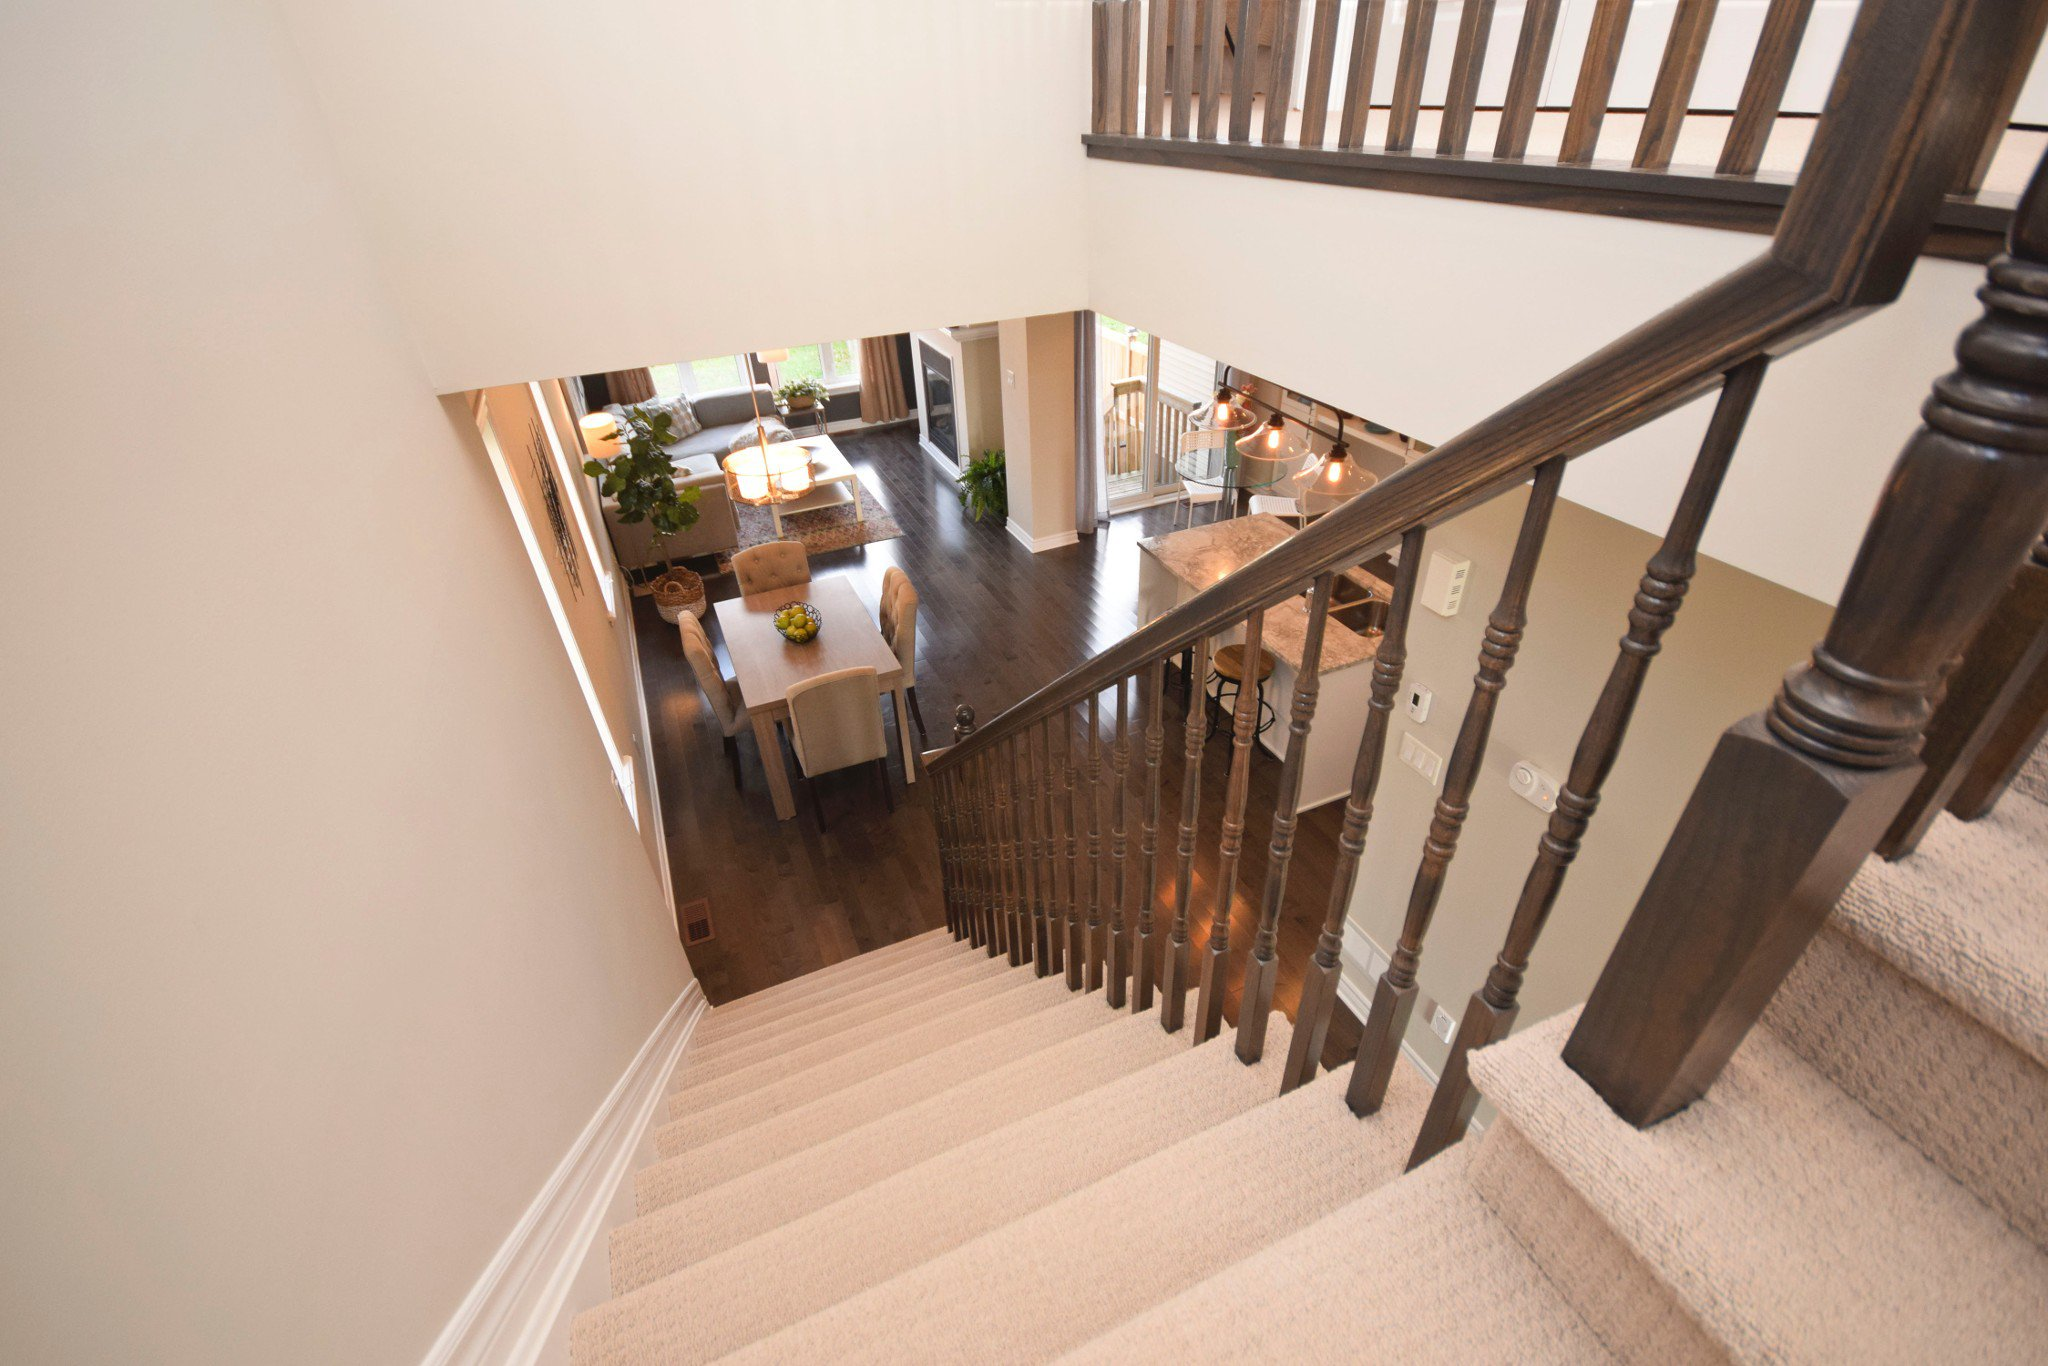 Photo 33: Photos: 131 Popplewell Crescent in Ottawa: Cedargrove / Fraserdale House for sale (Barrhaven)  : MLS®# 1130335